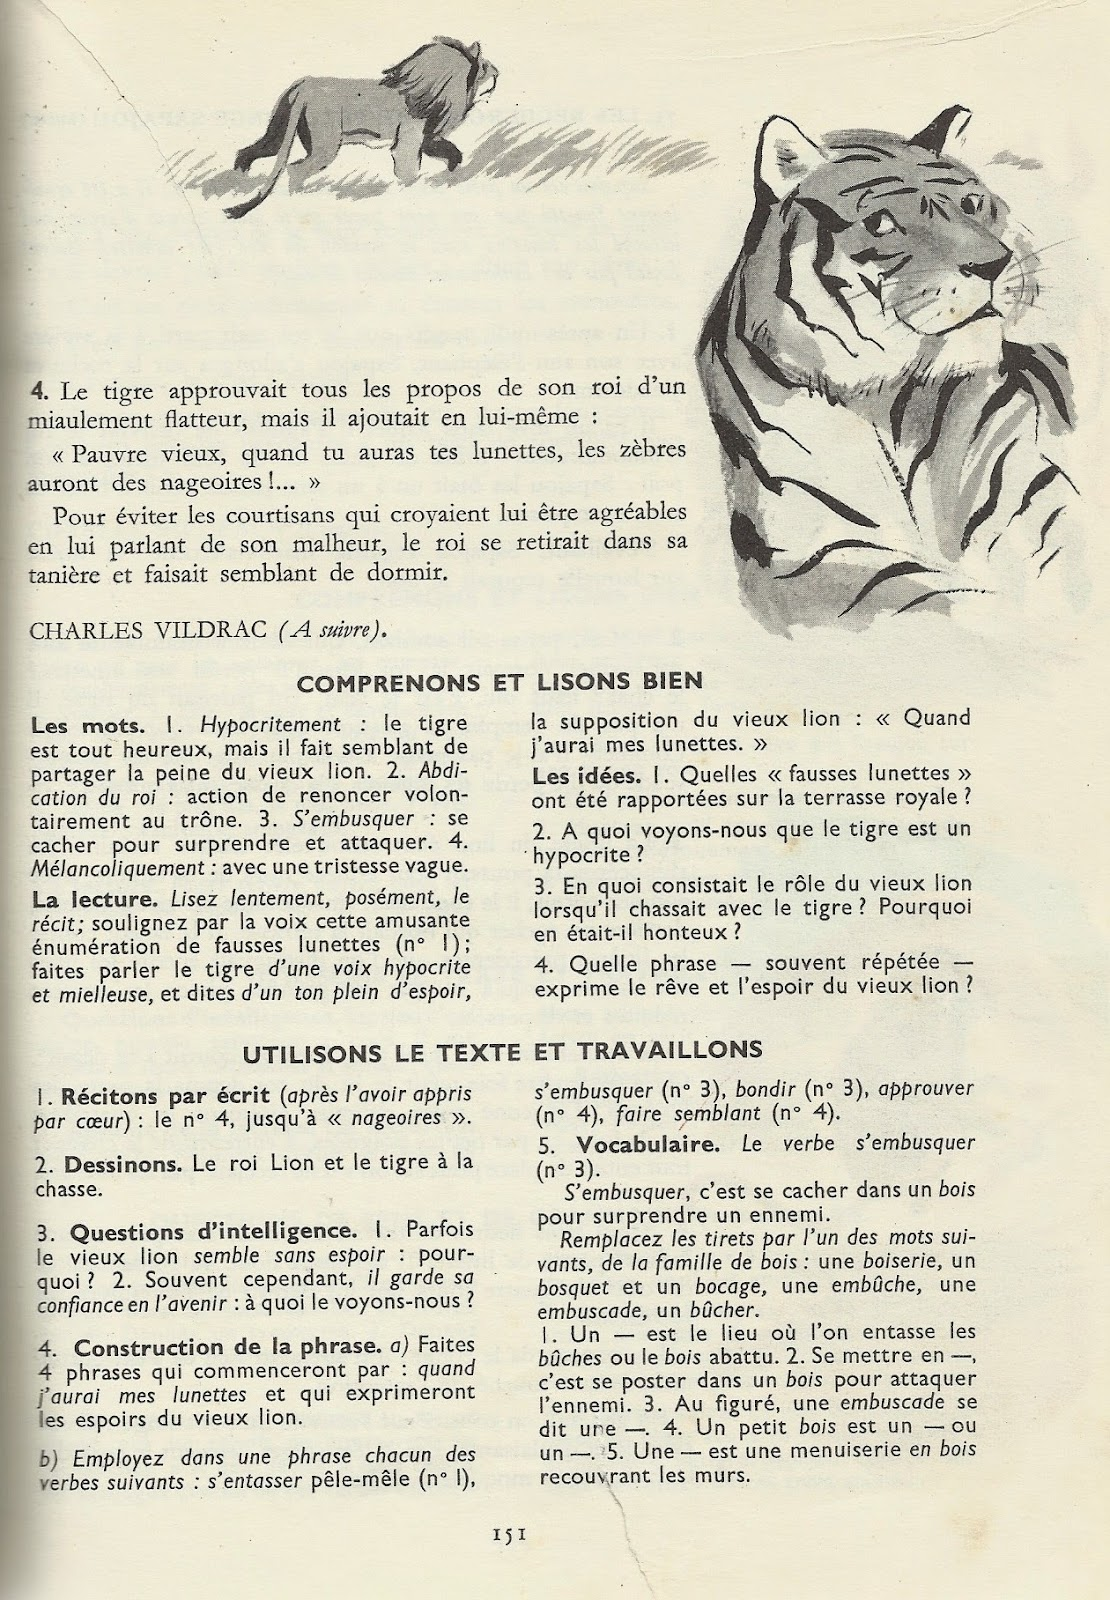 tigre plus fort que le lion